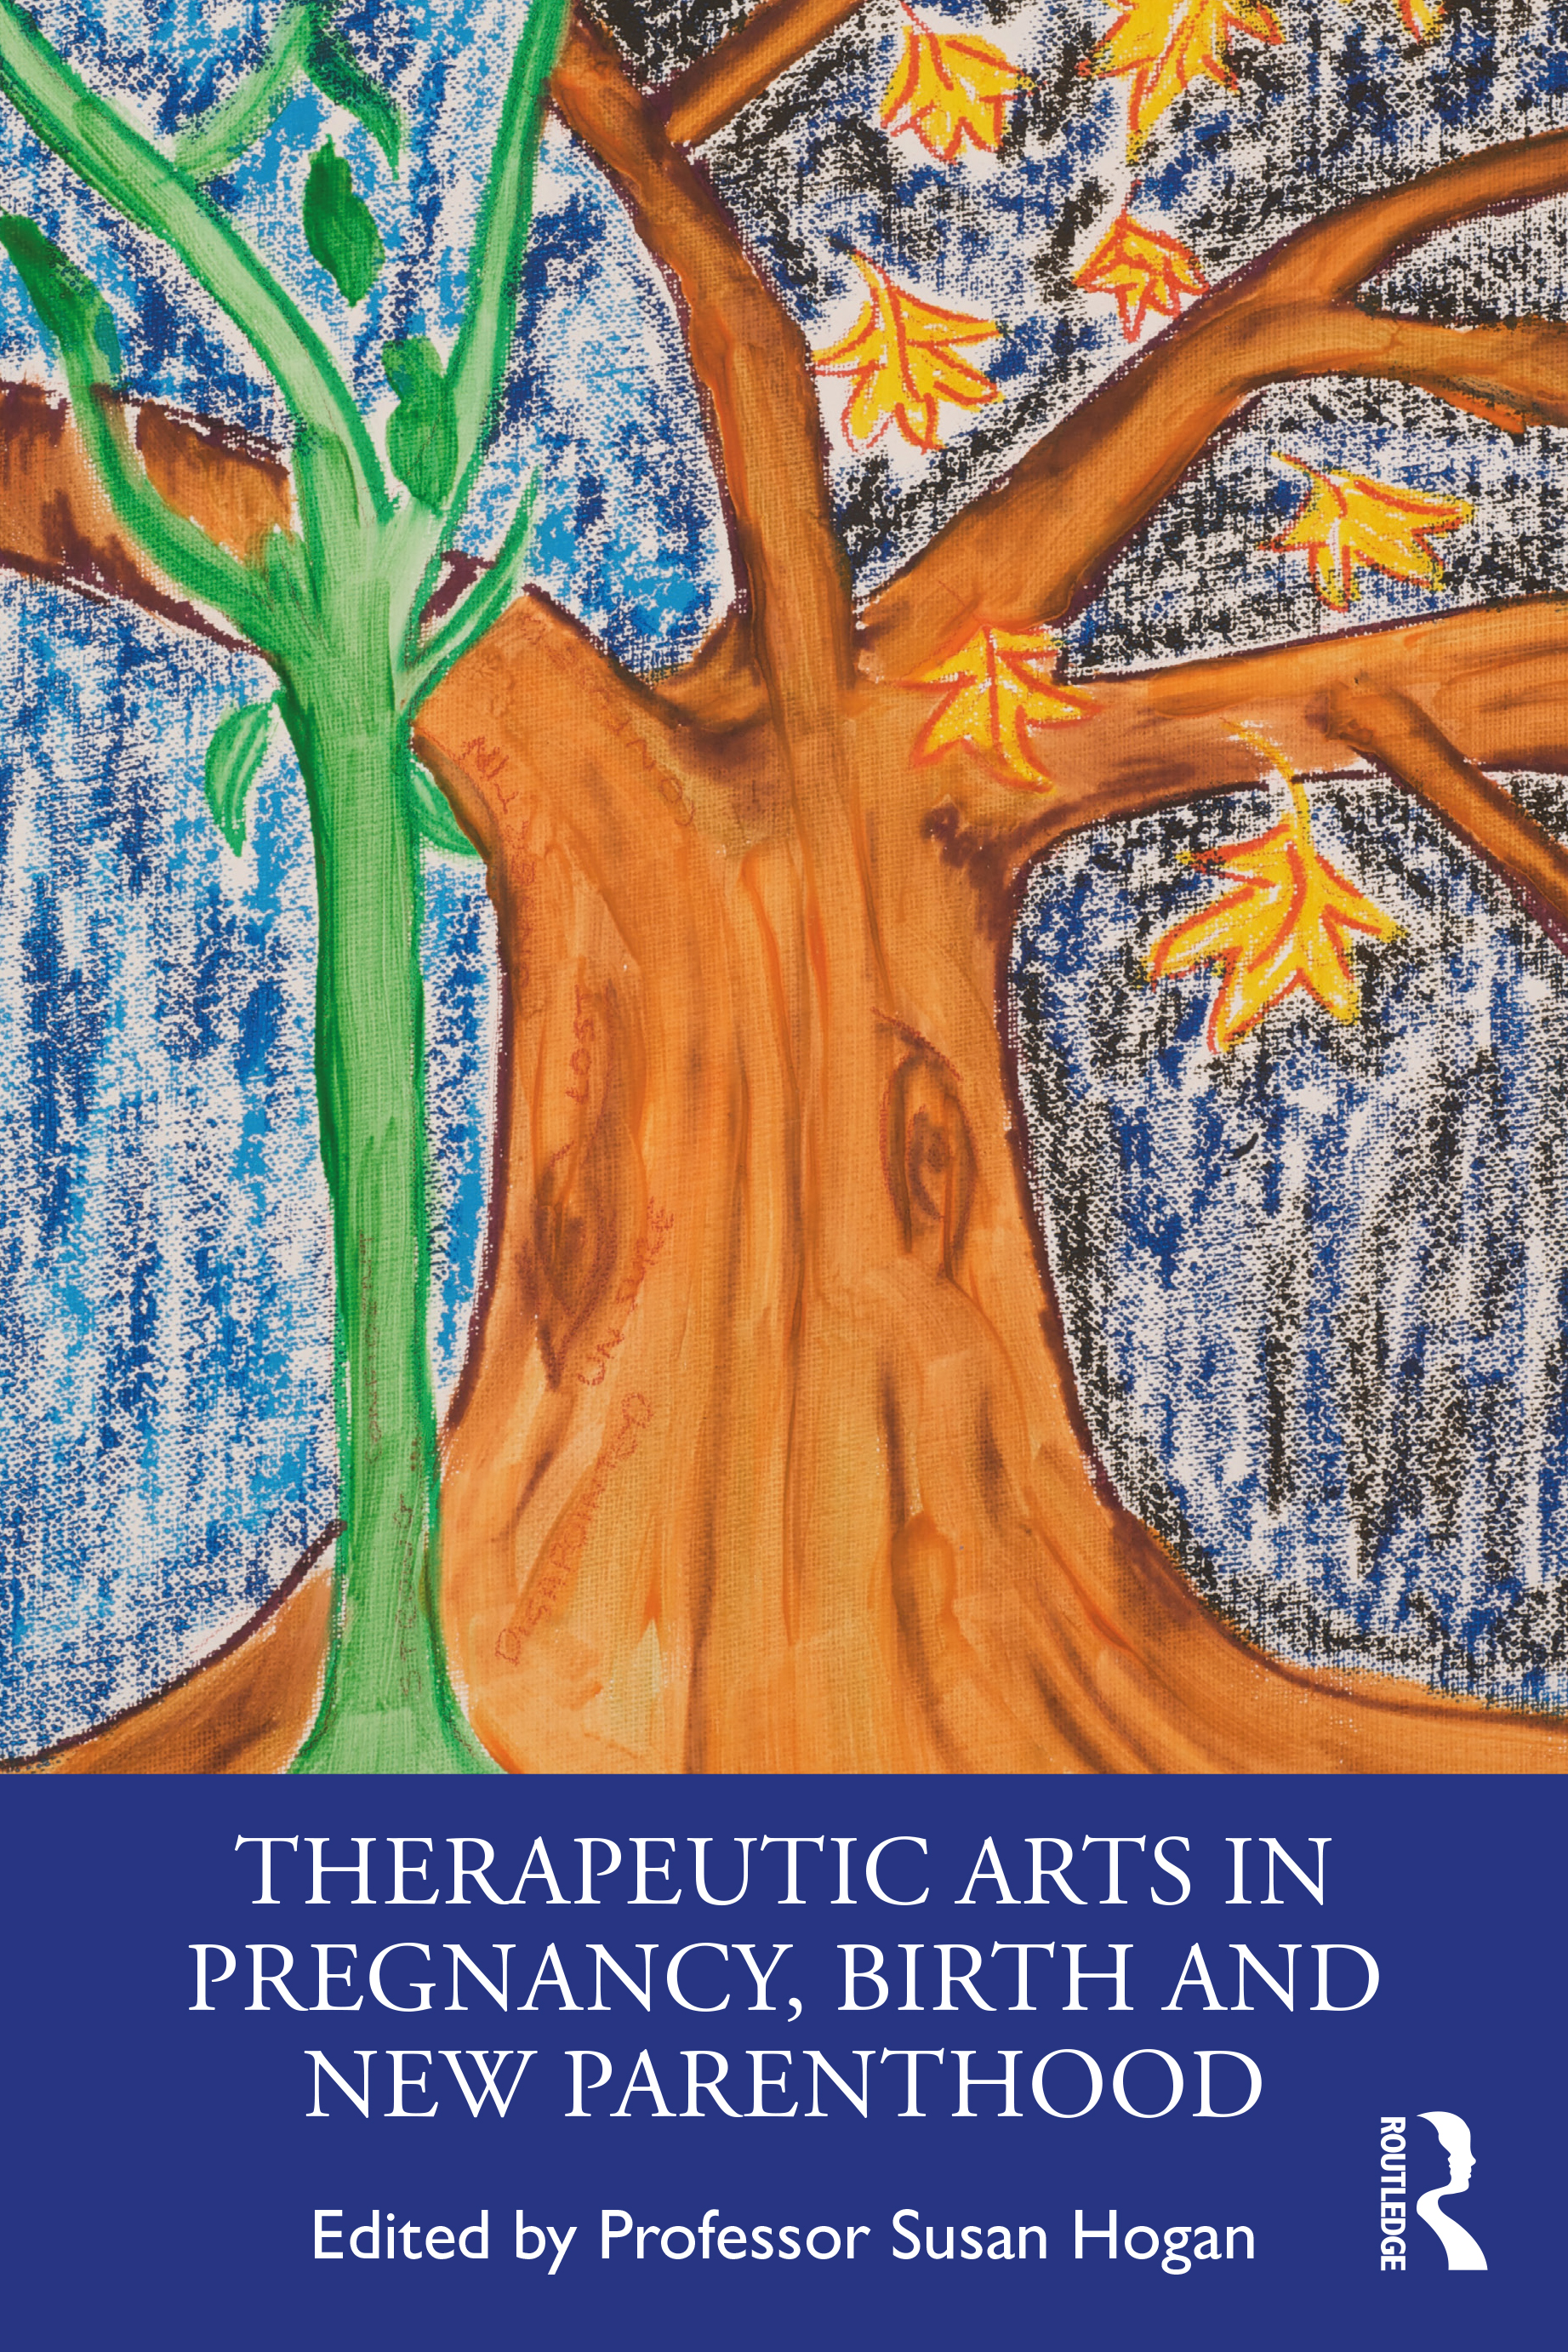 Therapeutic Arts in Pregnancy, Birth and New Parenthood